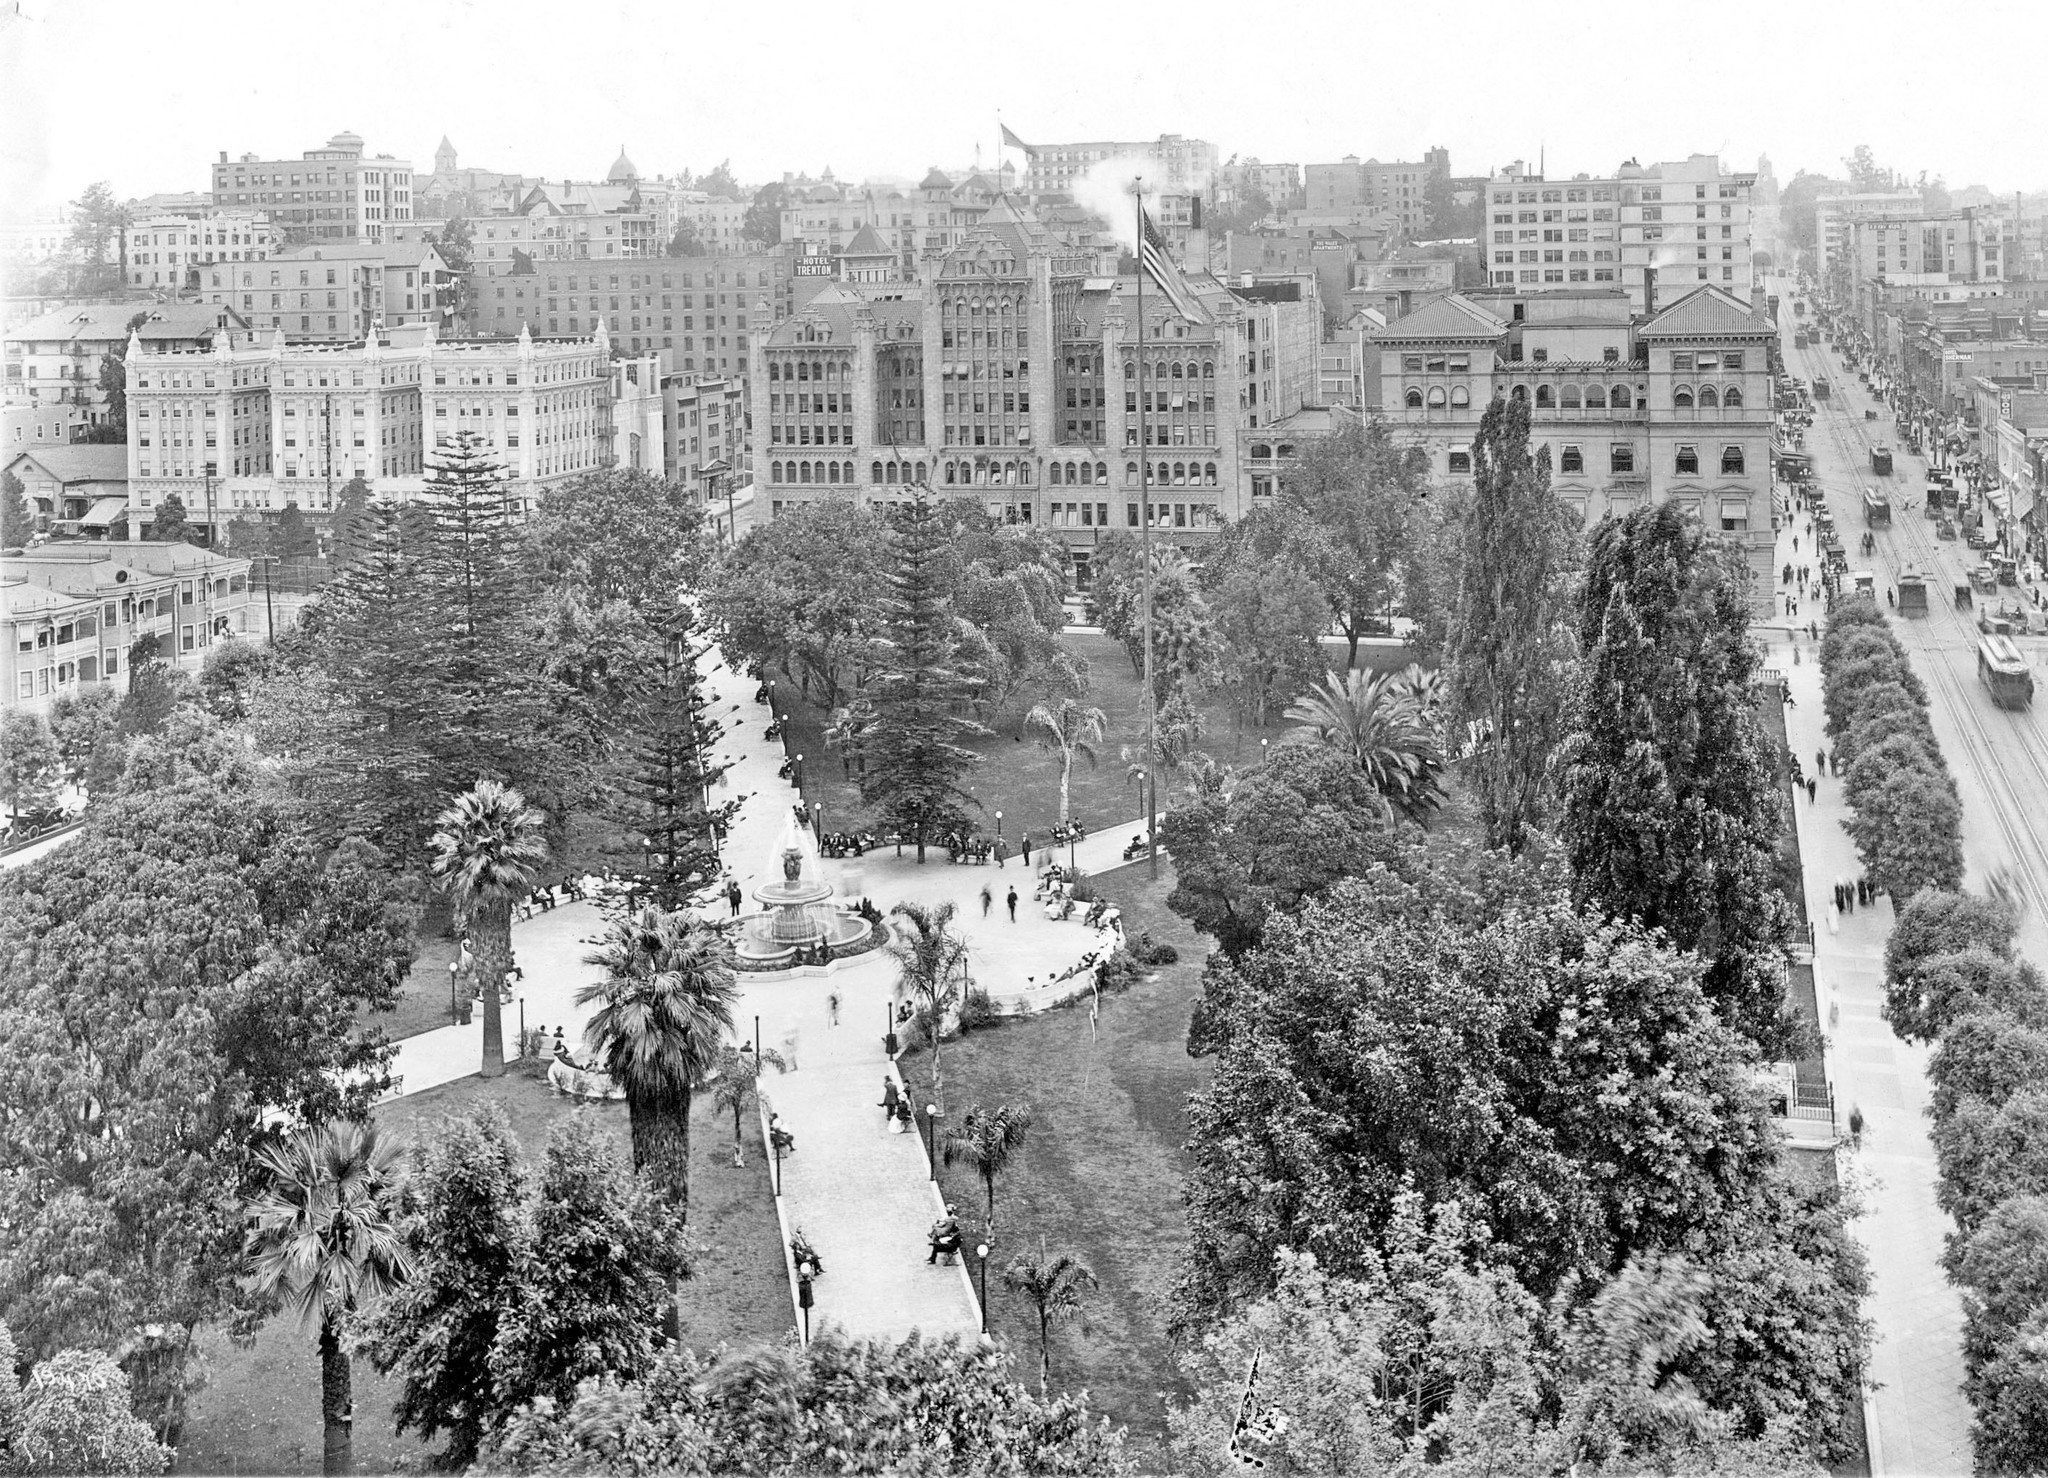 gay cruising spots pershing square 1918